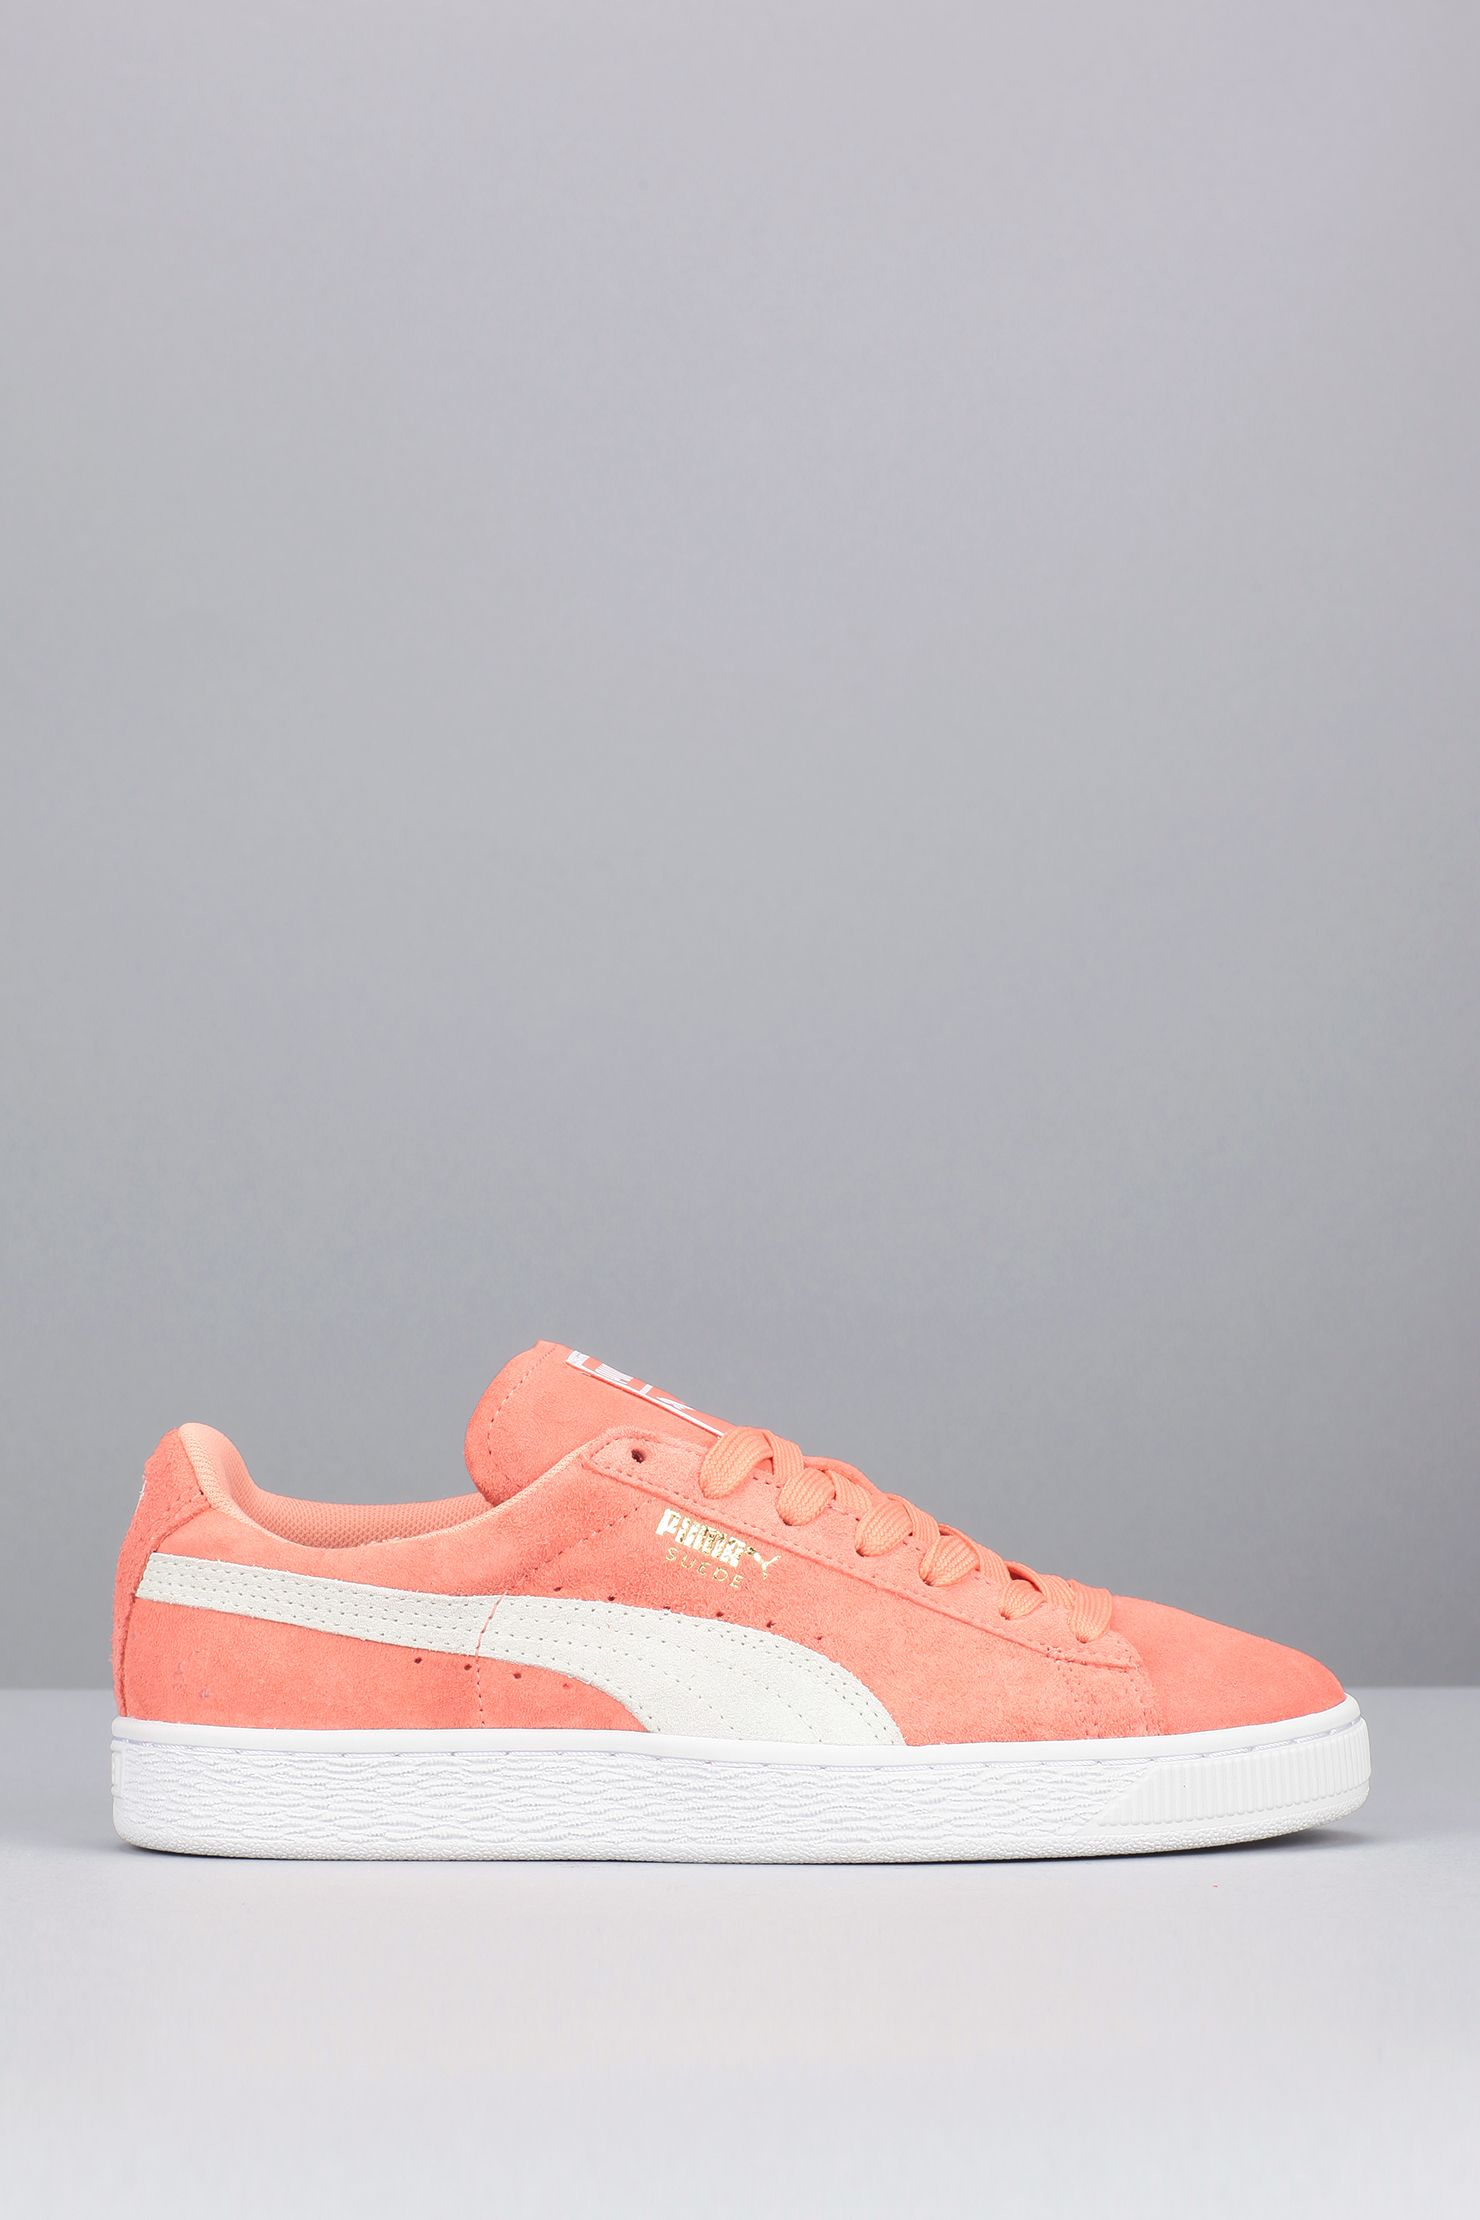 ee161534c1a Baskets corail cuir Suede Classic + Kinds Of Shoes